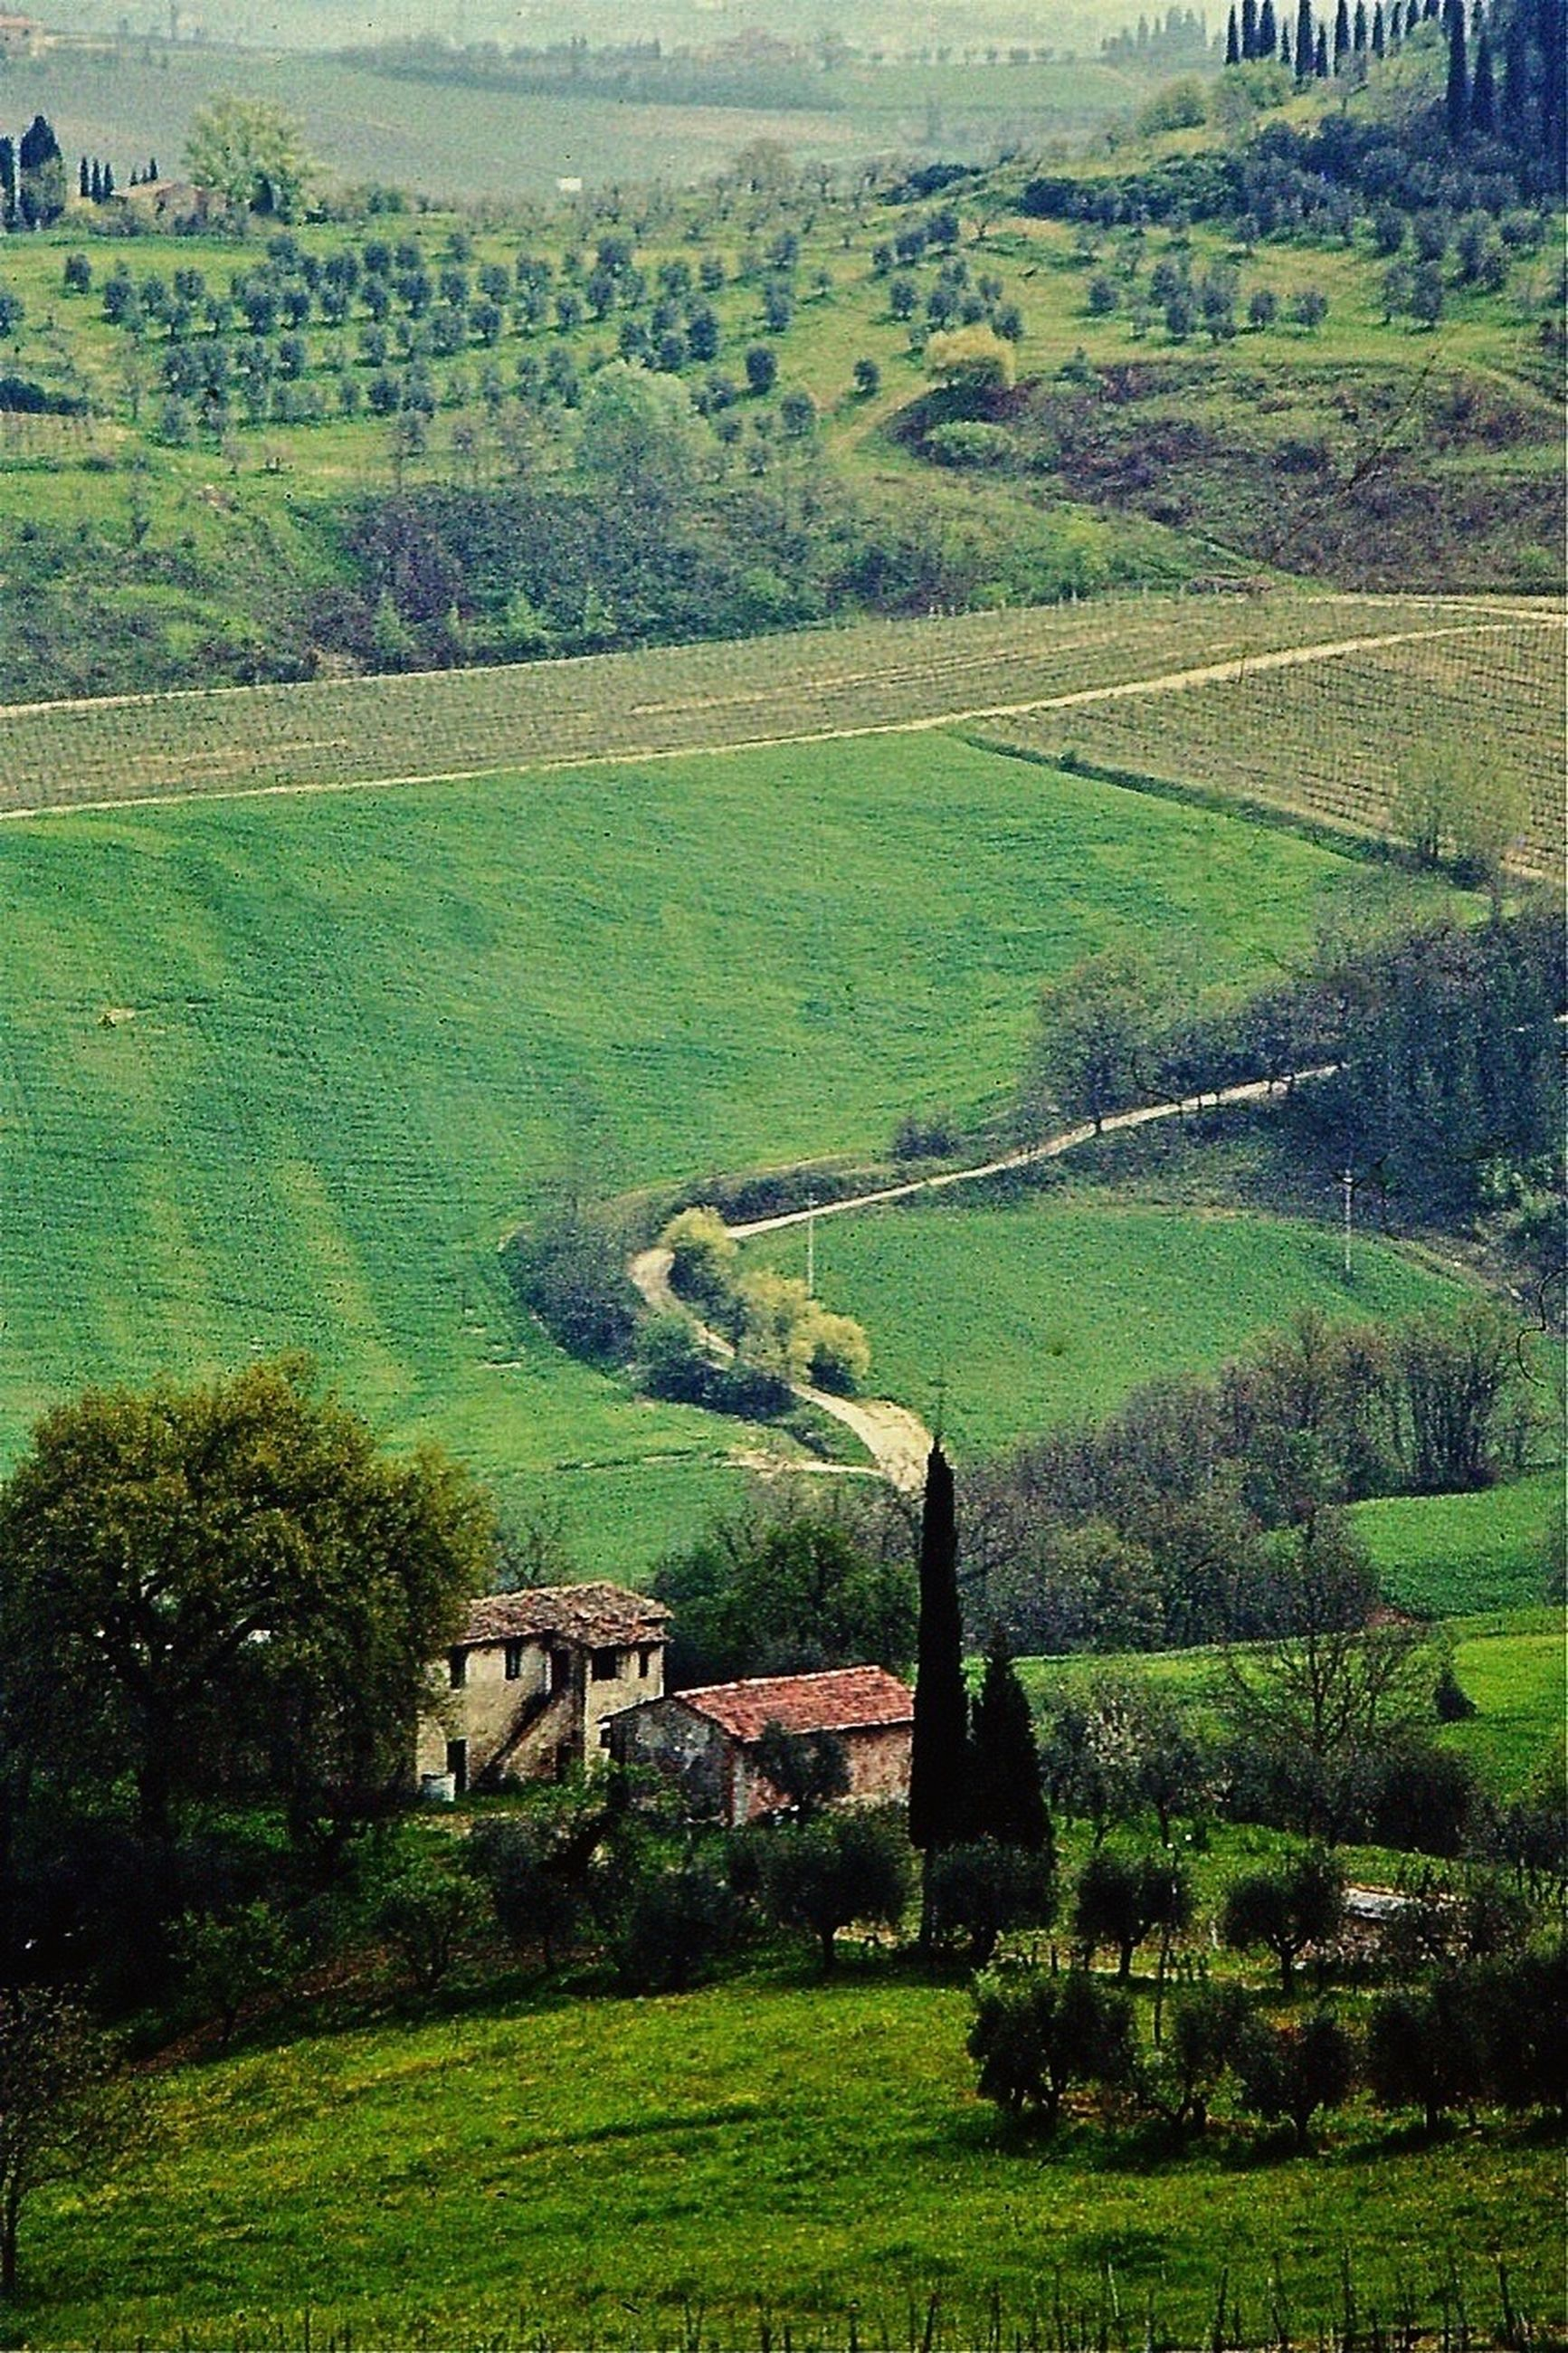 house, landscape, architecture, green color, built structure, agriculture, farm, building exterior, grass, high angle view, field, tree, rural scene, residential structure, tranquil scene, tranquility, solitude, countryside, scenics, village, cultivated land, crop, plant, nature, beauty in nature, remote, green, outdoors, non-urban scene, day, growth, agricultural